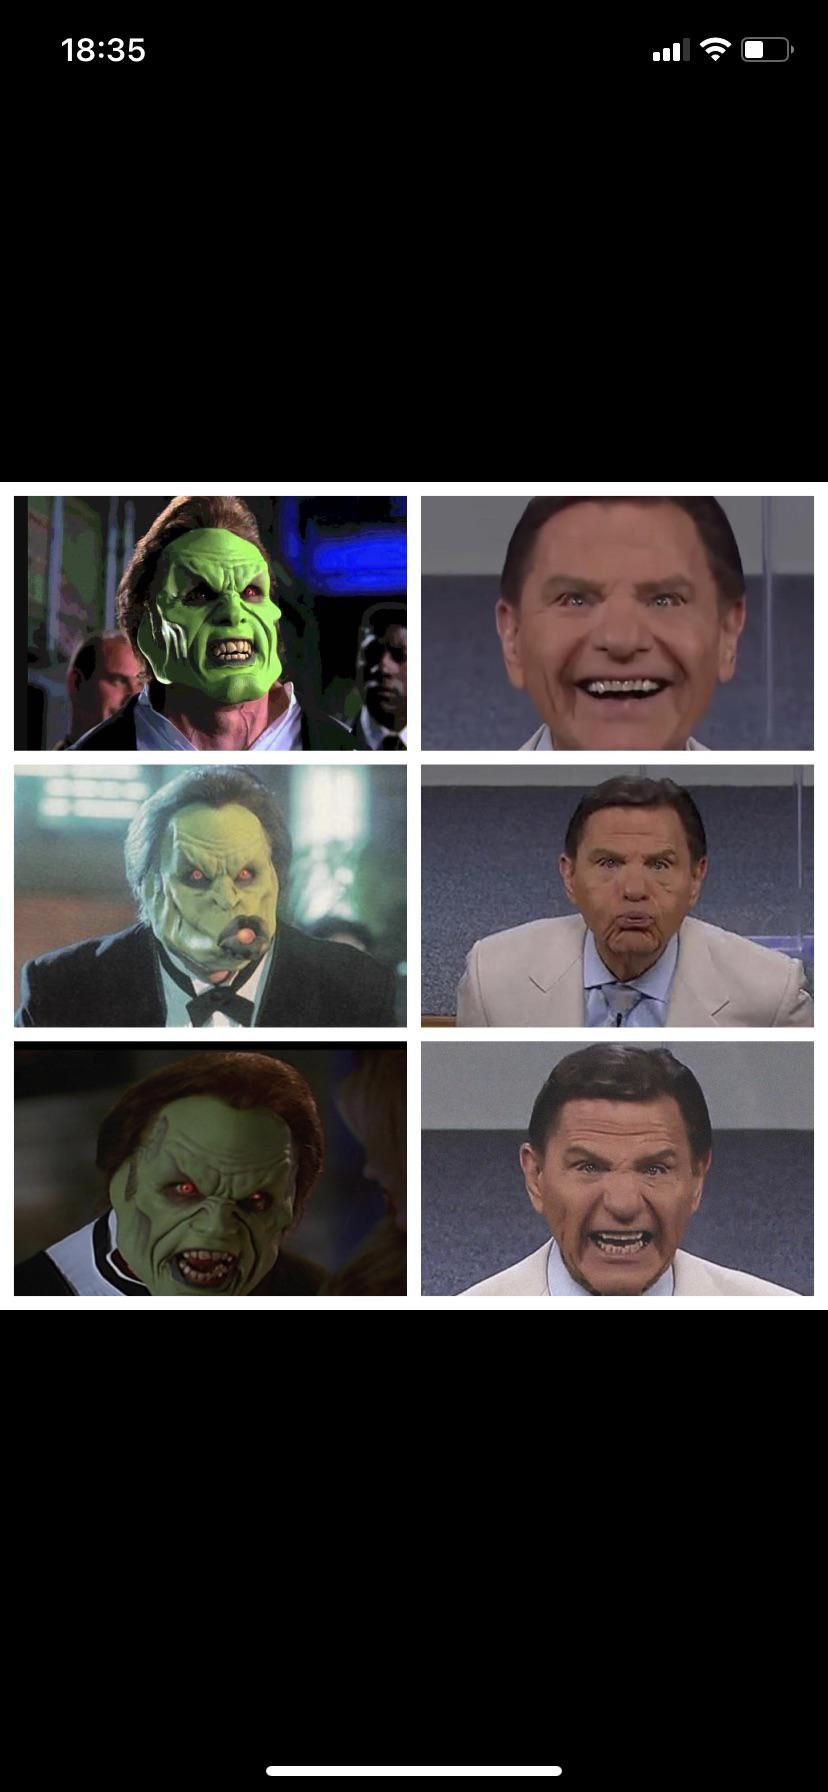 Dorian VS. Kenneth Copeland. You're welcome.